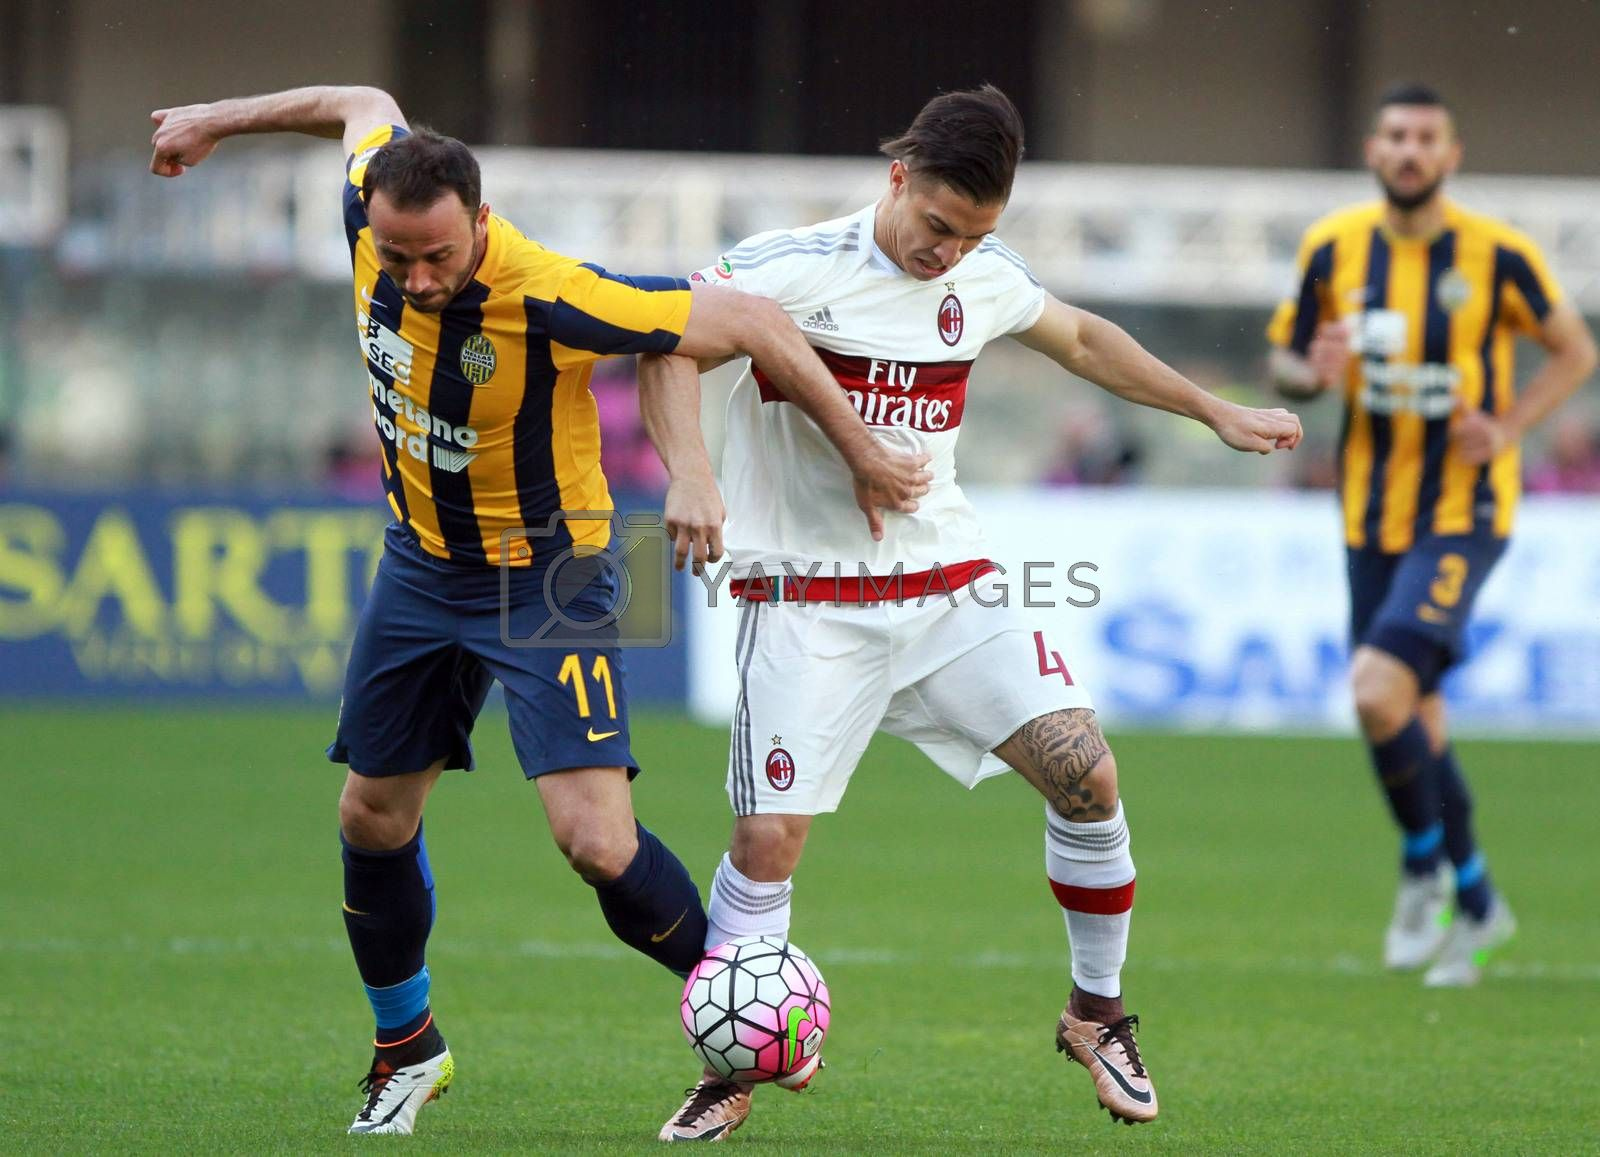 ITALY, Verona: Hellas Verona's forward Giampaolo Pazzini (L) vies with Milan's midfielder Jose Mauri during the Serie A match between FC Hellas Verona v AC Milan on April 25, 2016. Luca Siligardi scored on a late free kick to secure the win for his team in the 95th minute.